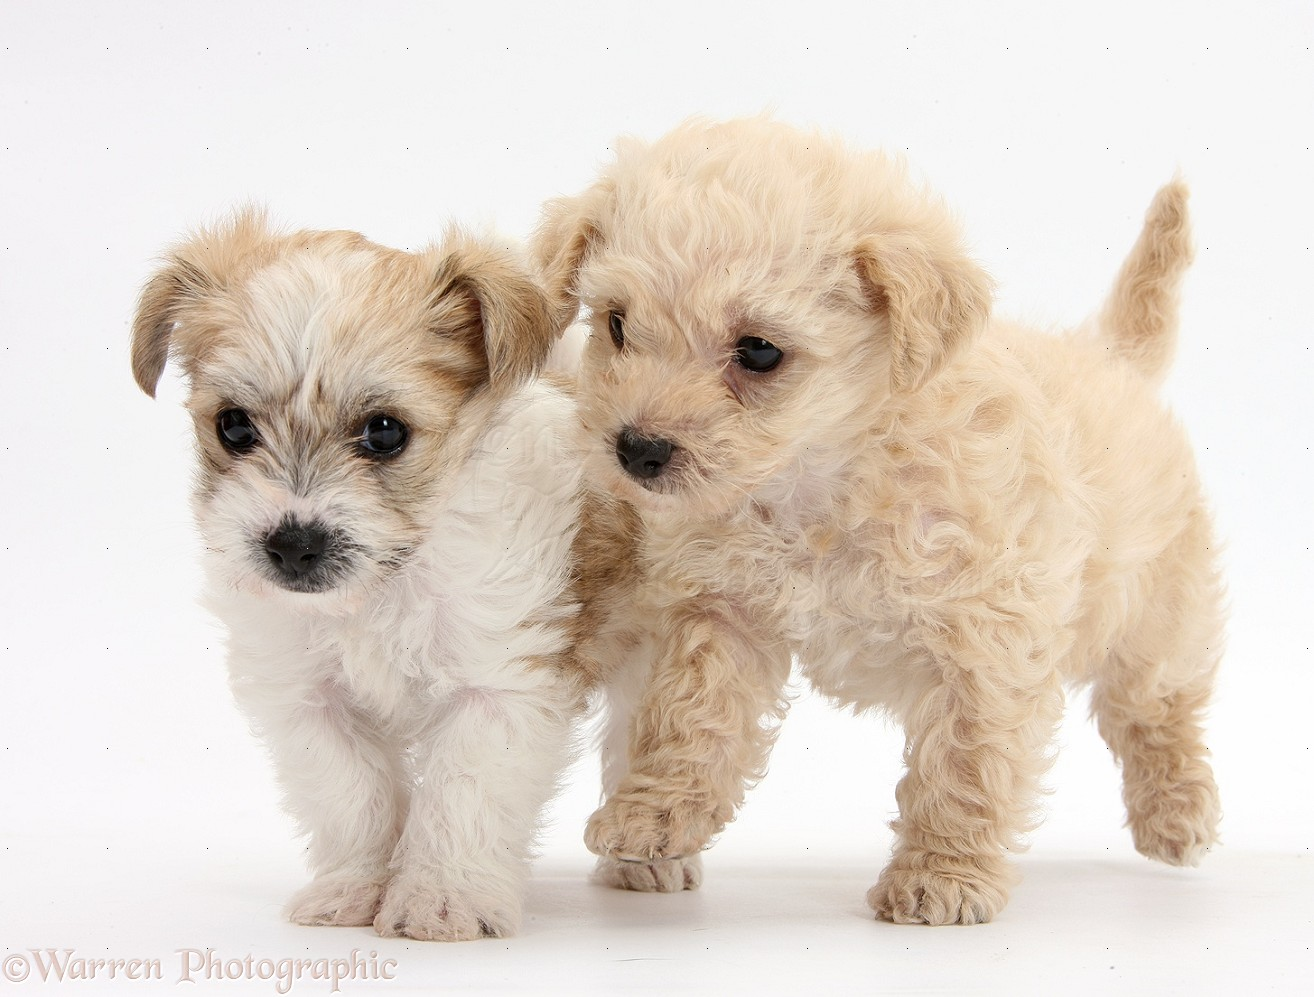 WP36076 Bichon Frisé x Yorkshire Terrier pups, 6 weeks old.